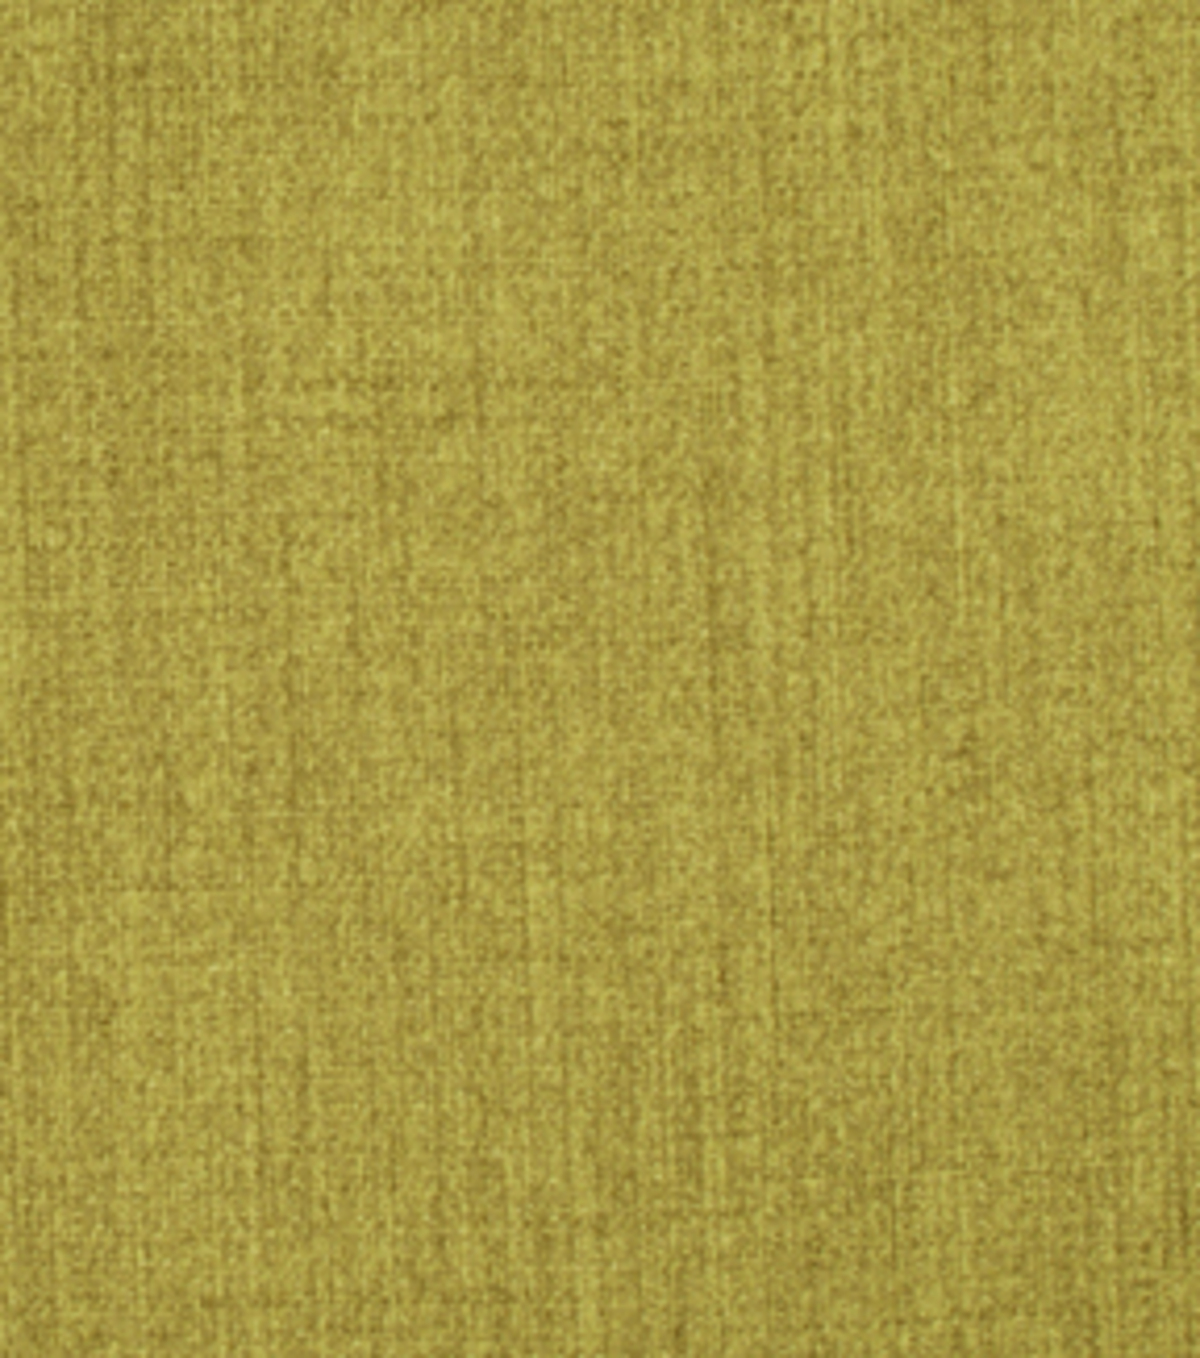 Home Decor 8\u0022x8\u0022 Fabric Swatch-Eaton Square Kramer Palm